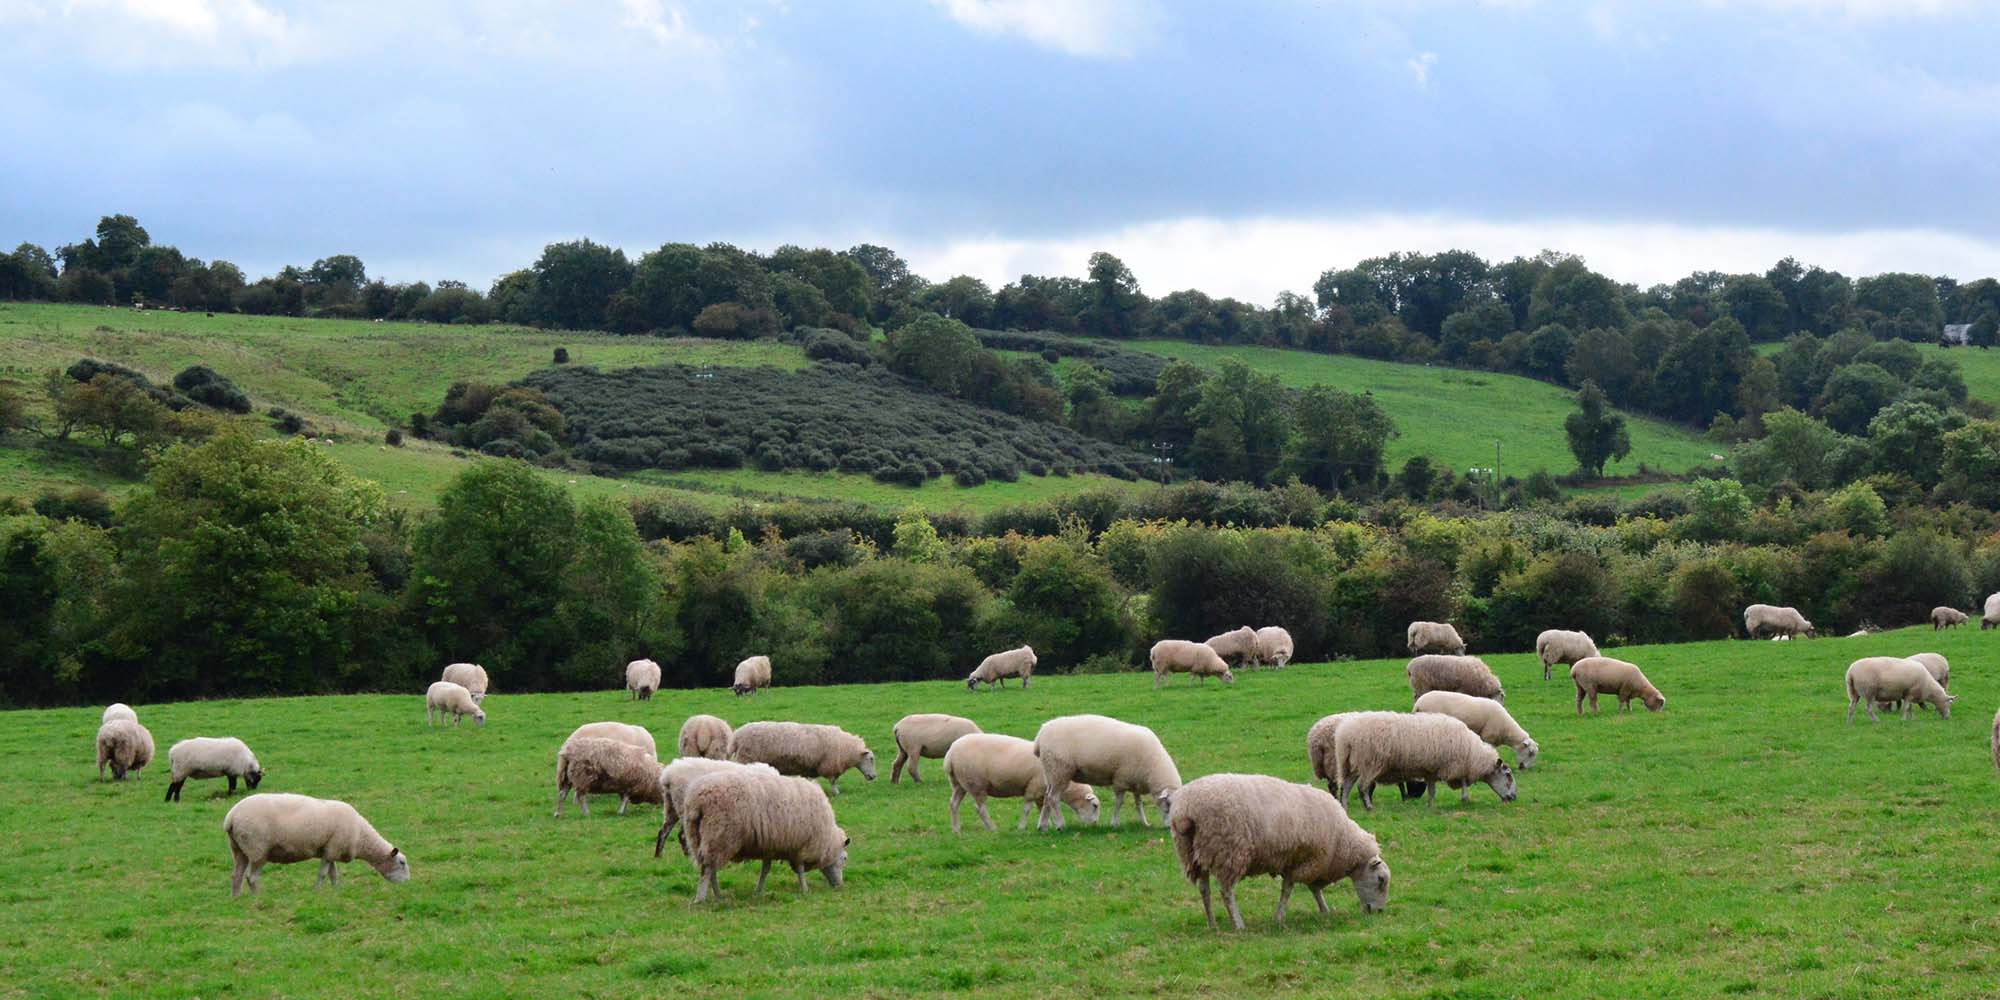 Sheep feed in Co. Offaly